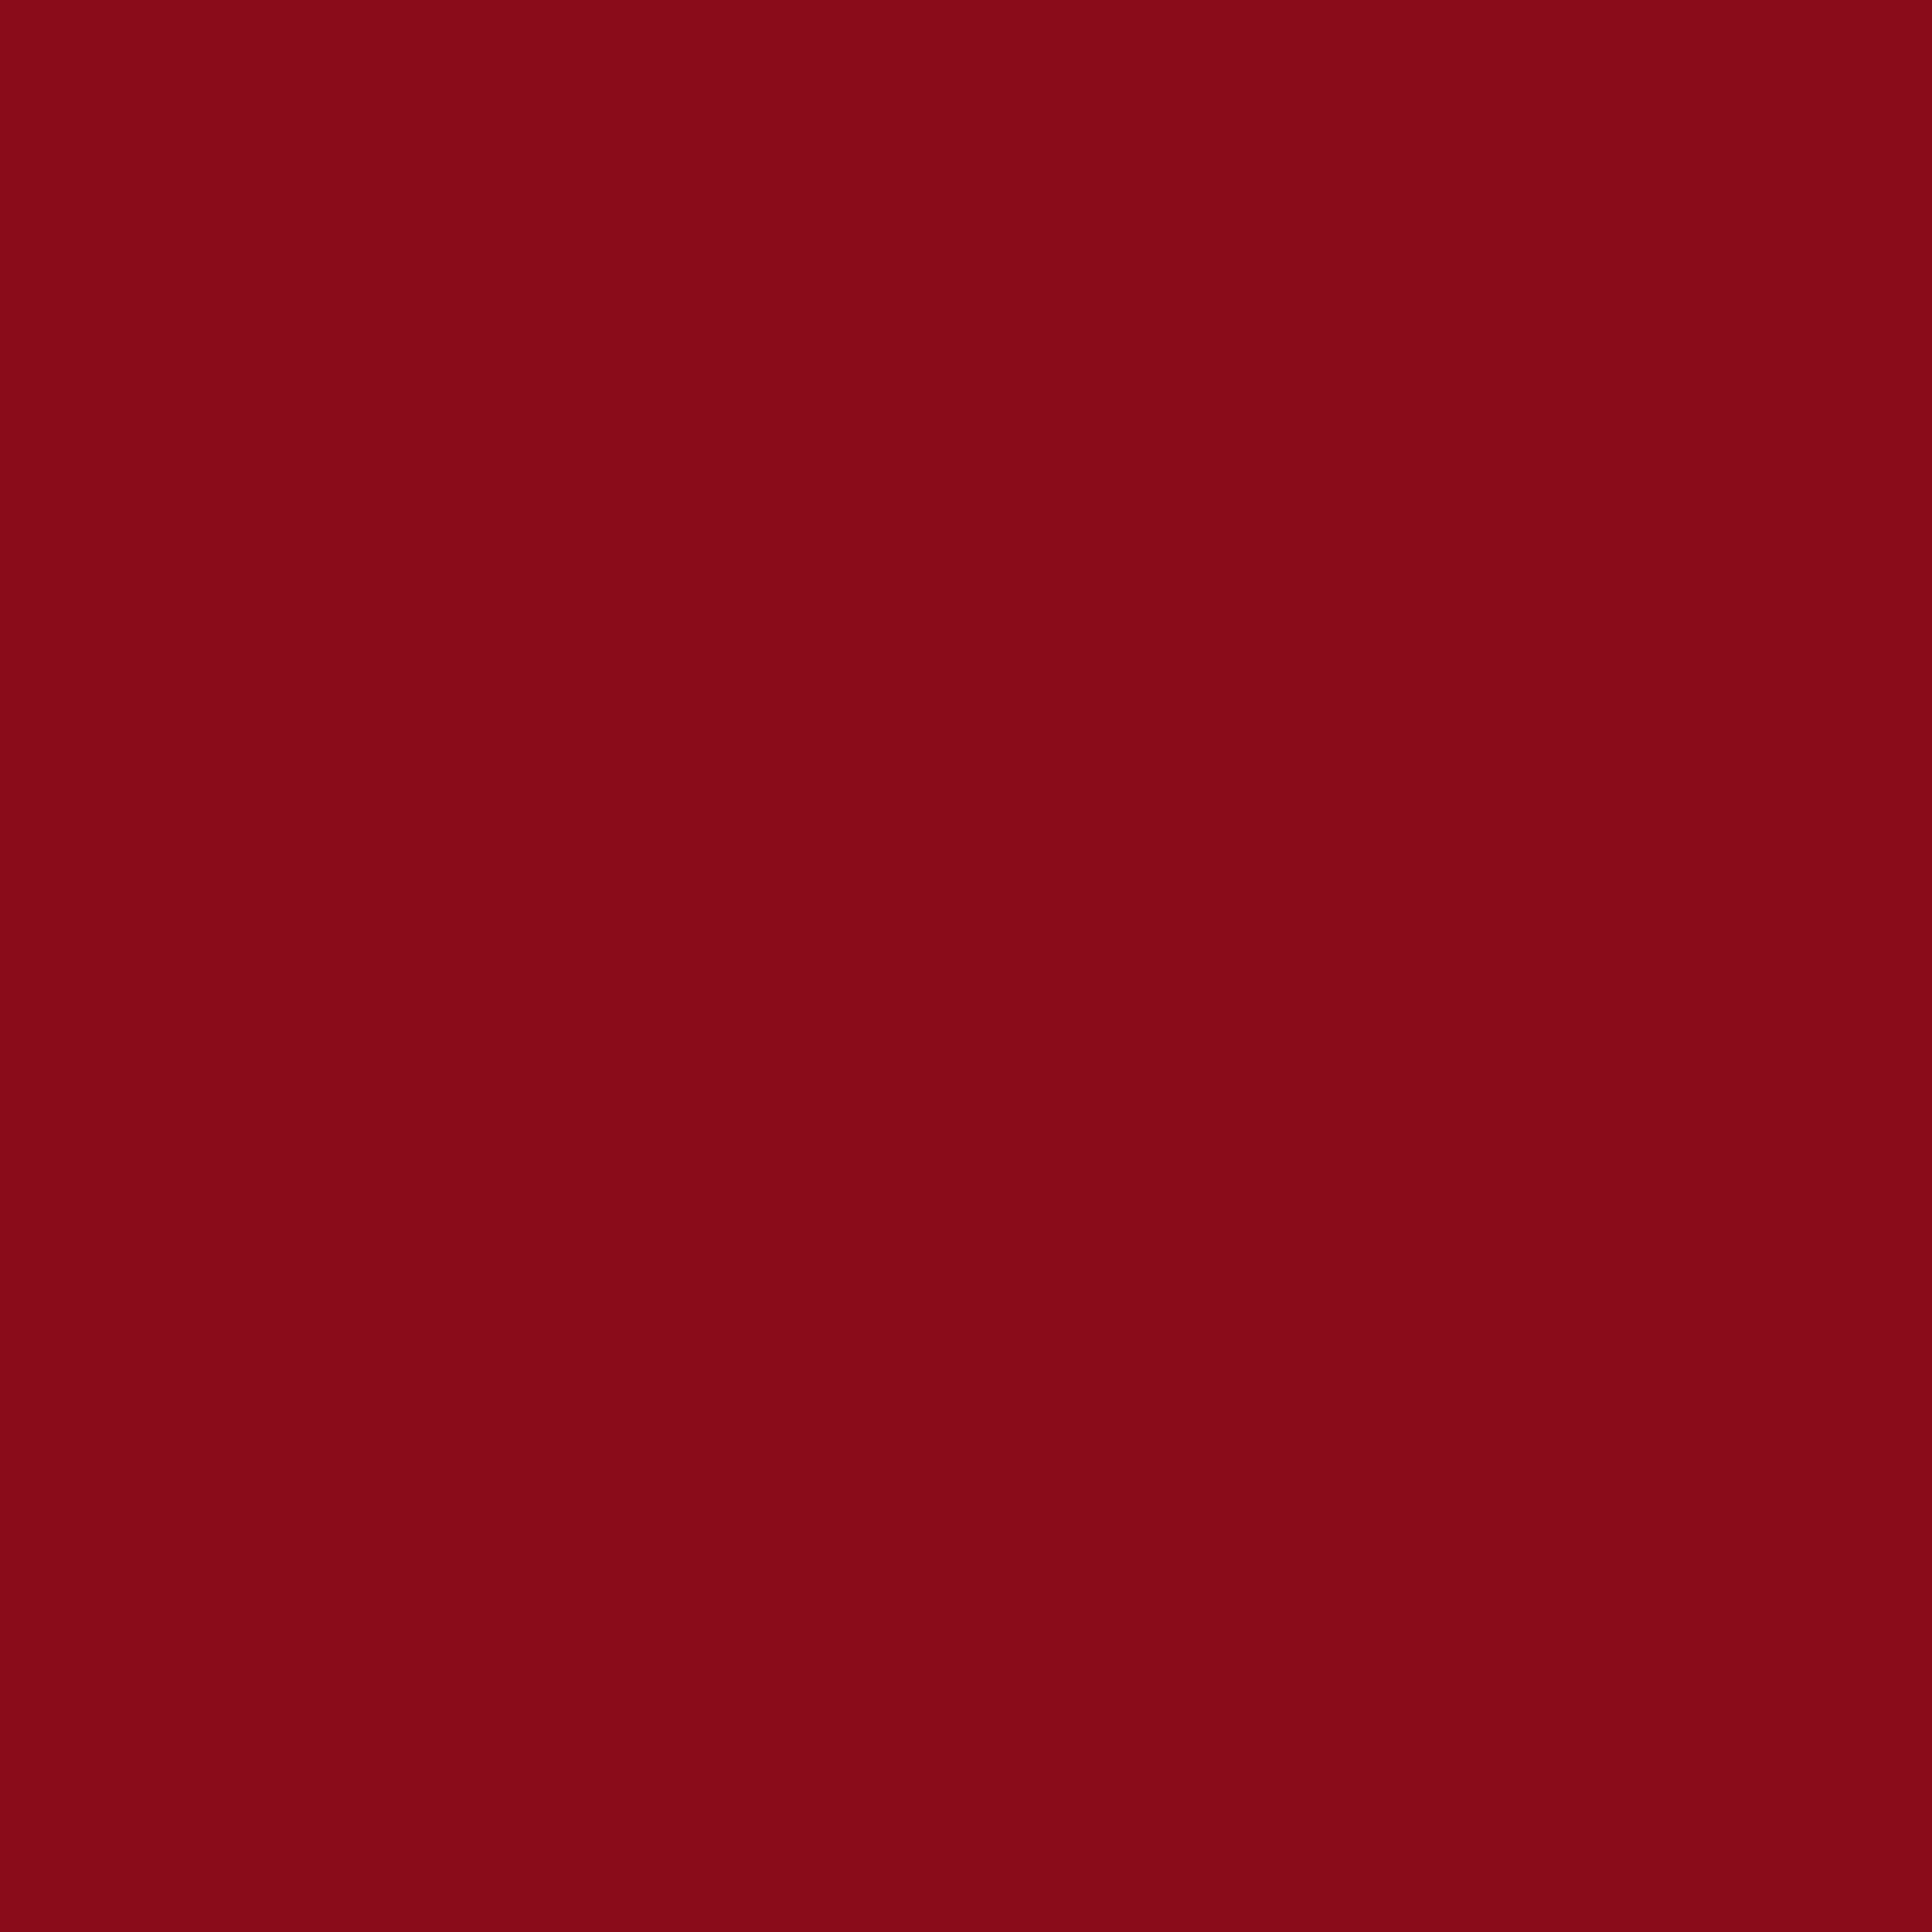 Avery Avery Facade Film RAL3005 Wine Red Lustre